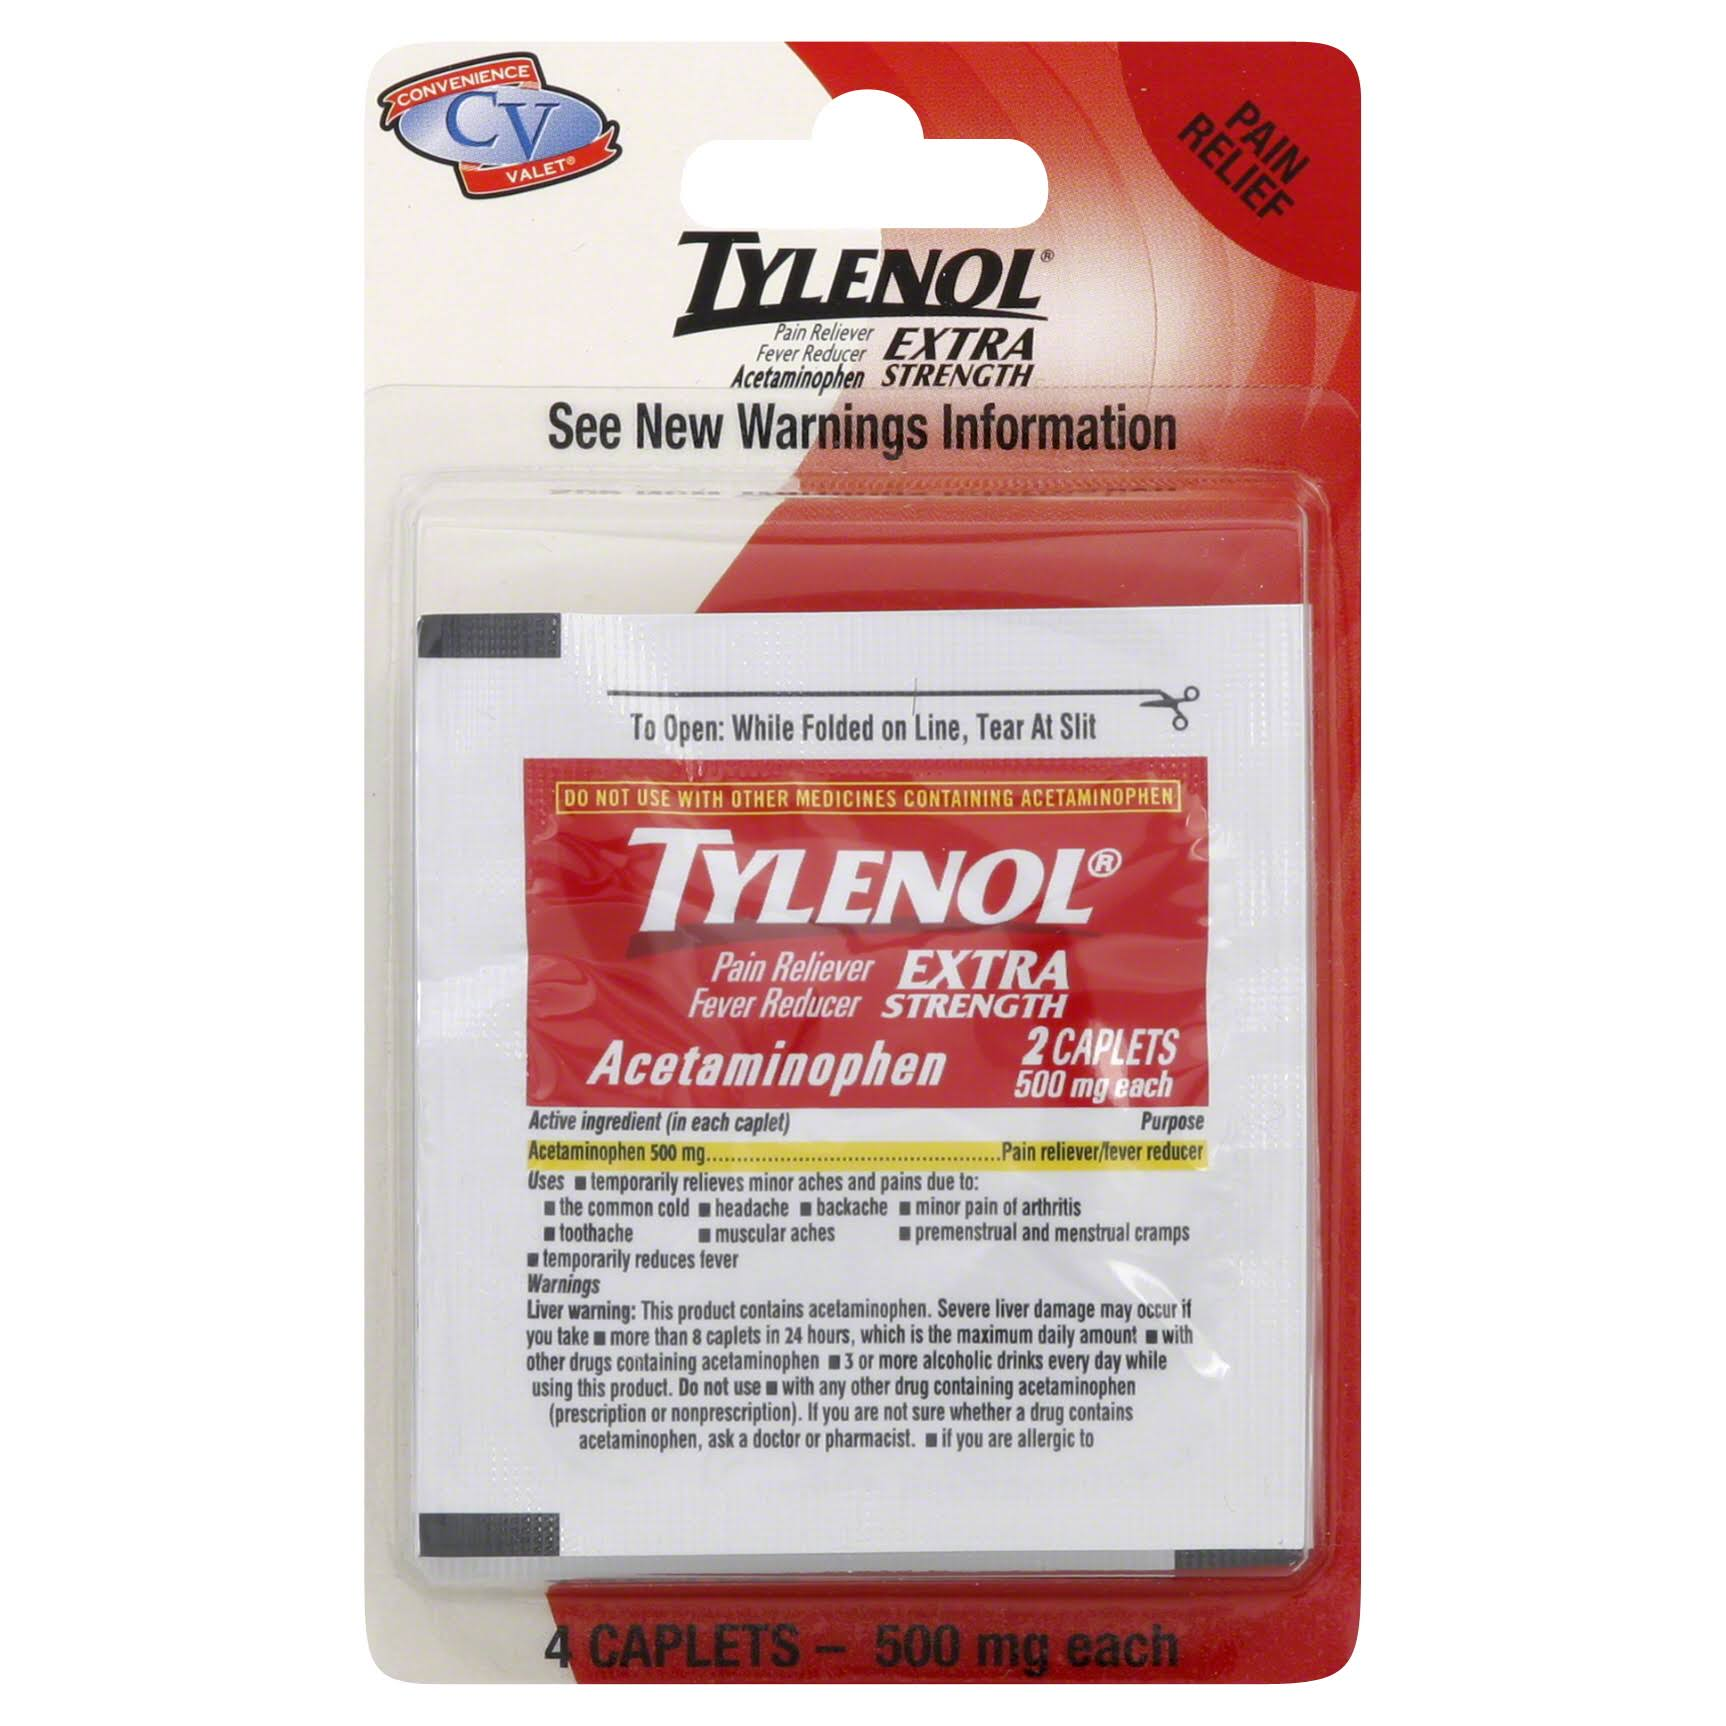 Tylenol Extra Strength Pain Reliever - 4 Caplets